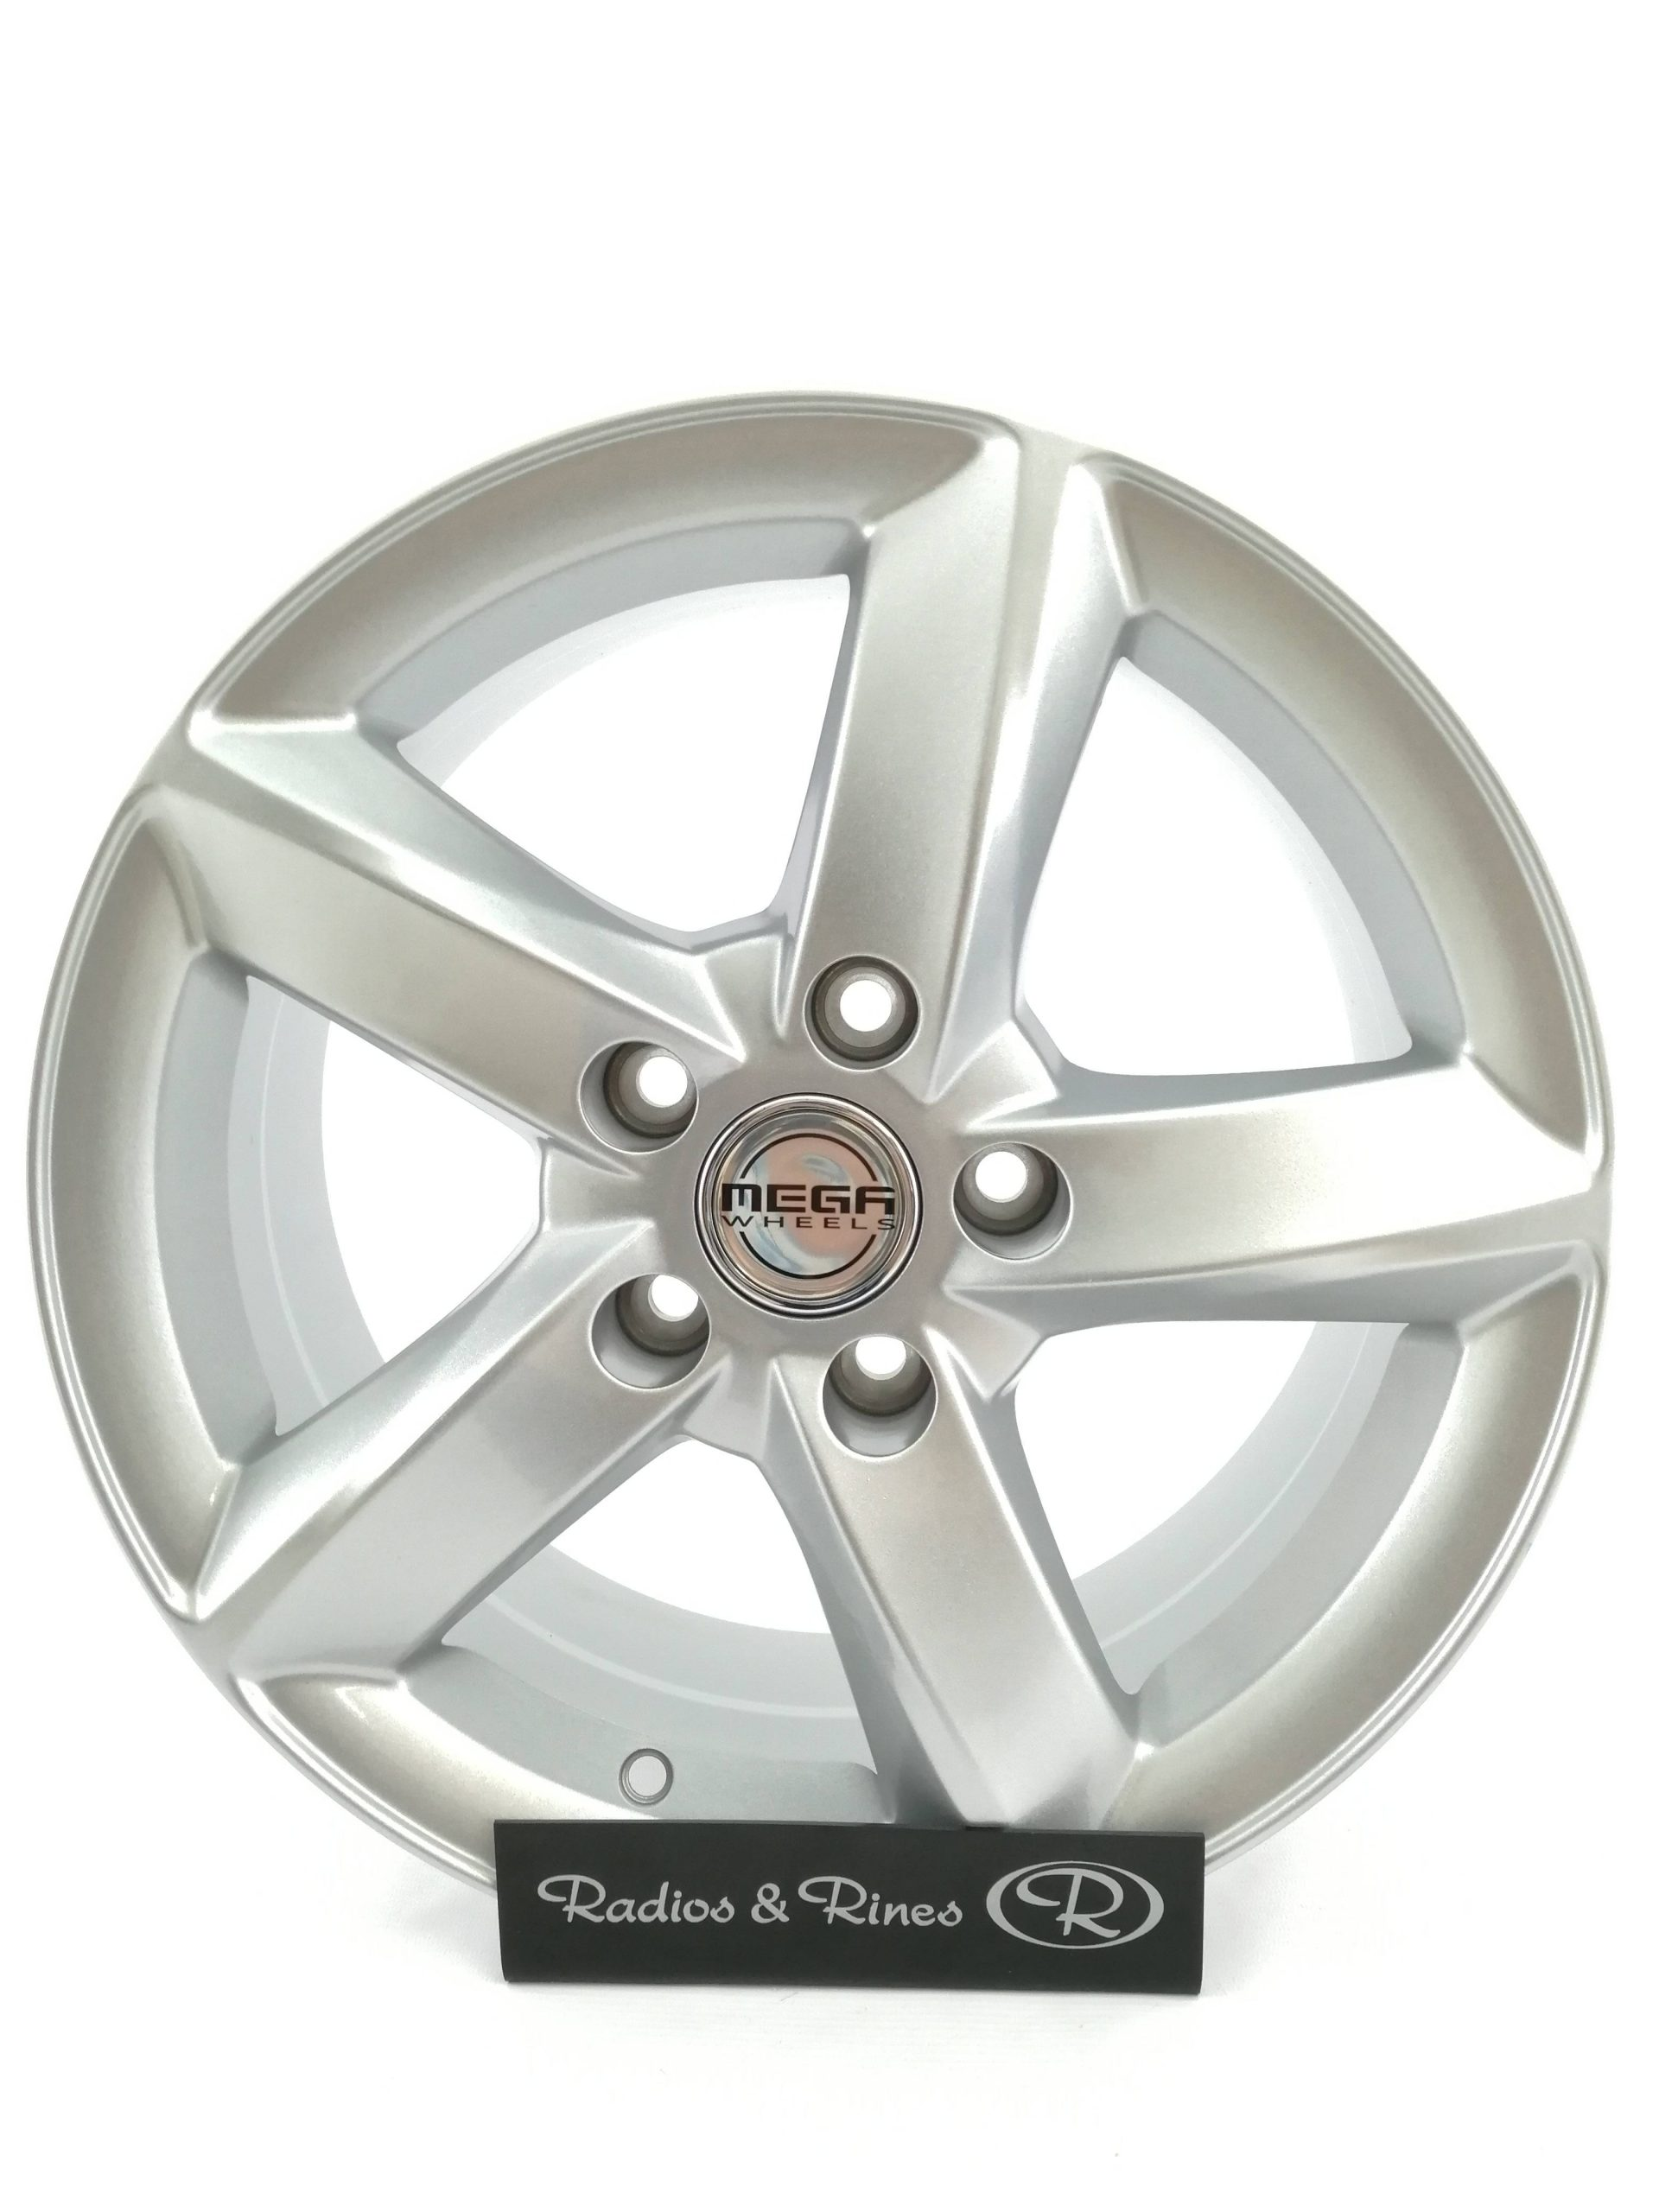 RIN RACER 890 R16X7 5H 114.3 PEAL SILVER